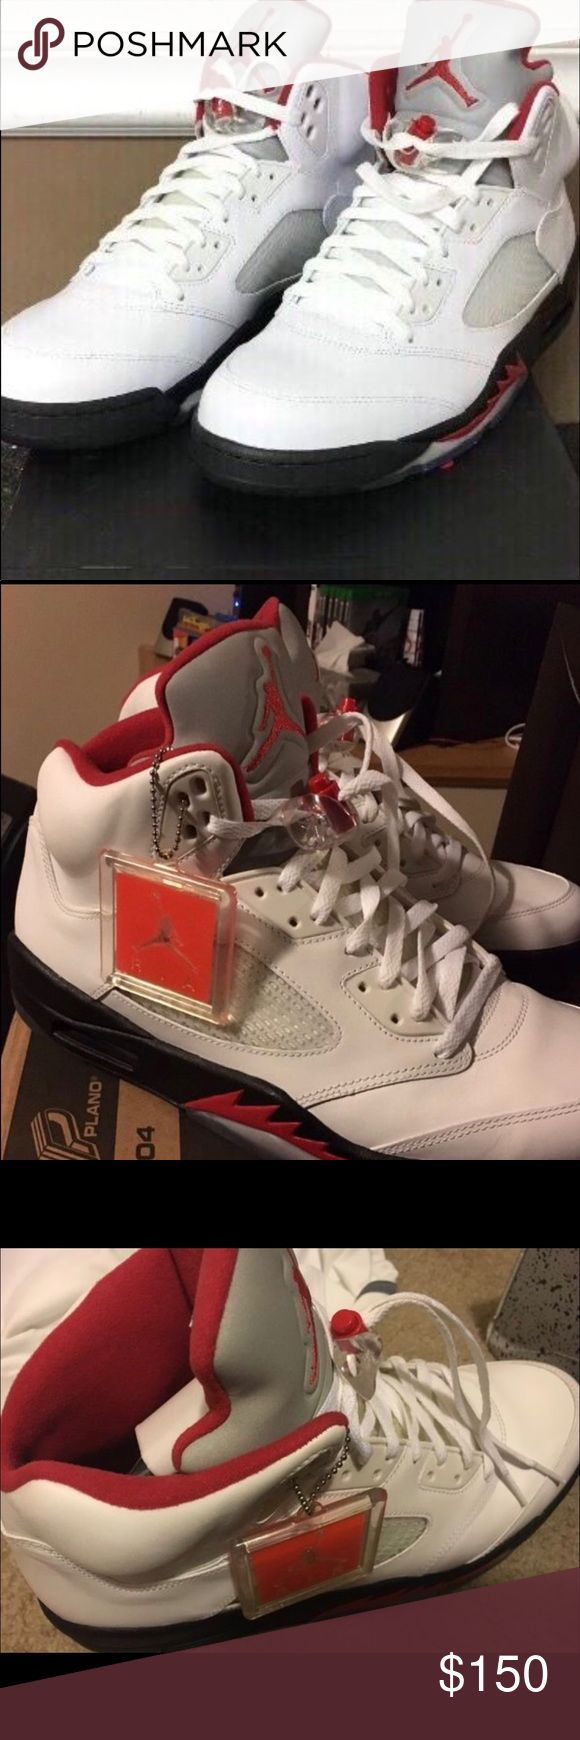 JORDAN V's 5's RETRO METALLIC SILVER MEN SIZE 13 MY HUSBAND IS THE SECOND OWNER OF THESE LIKE NEW KICKS. HE PERSONALLY HAS NEVER WORN THEM BUT THE PREVIOUS OWNER DID A FEW TIMES. ADULT OWNERS! AUTHENTIC! NO TRADES! SERIOUS BUYERS ONLY! 🌸👟 Jordan Shoes Athletic Shoes